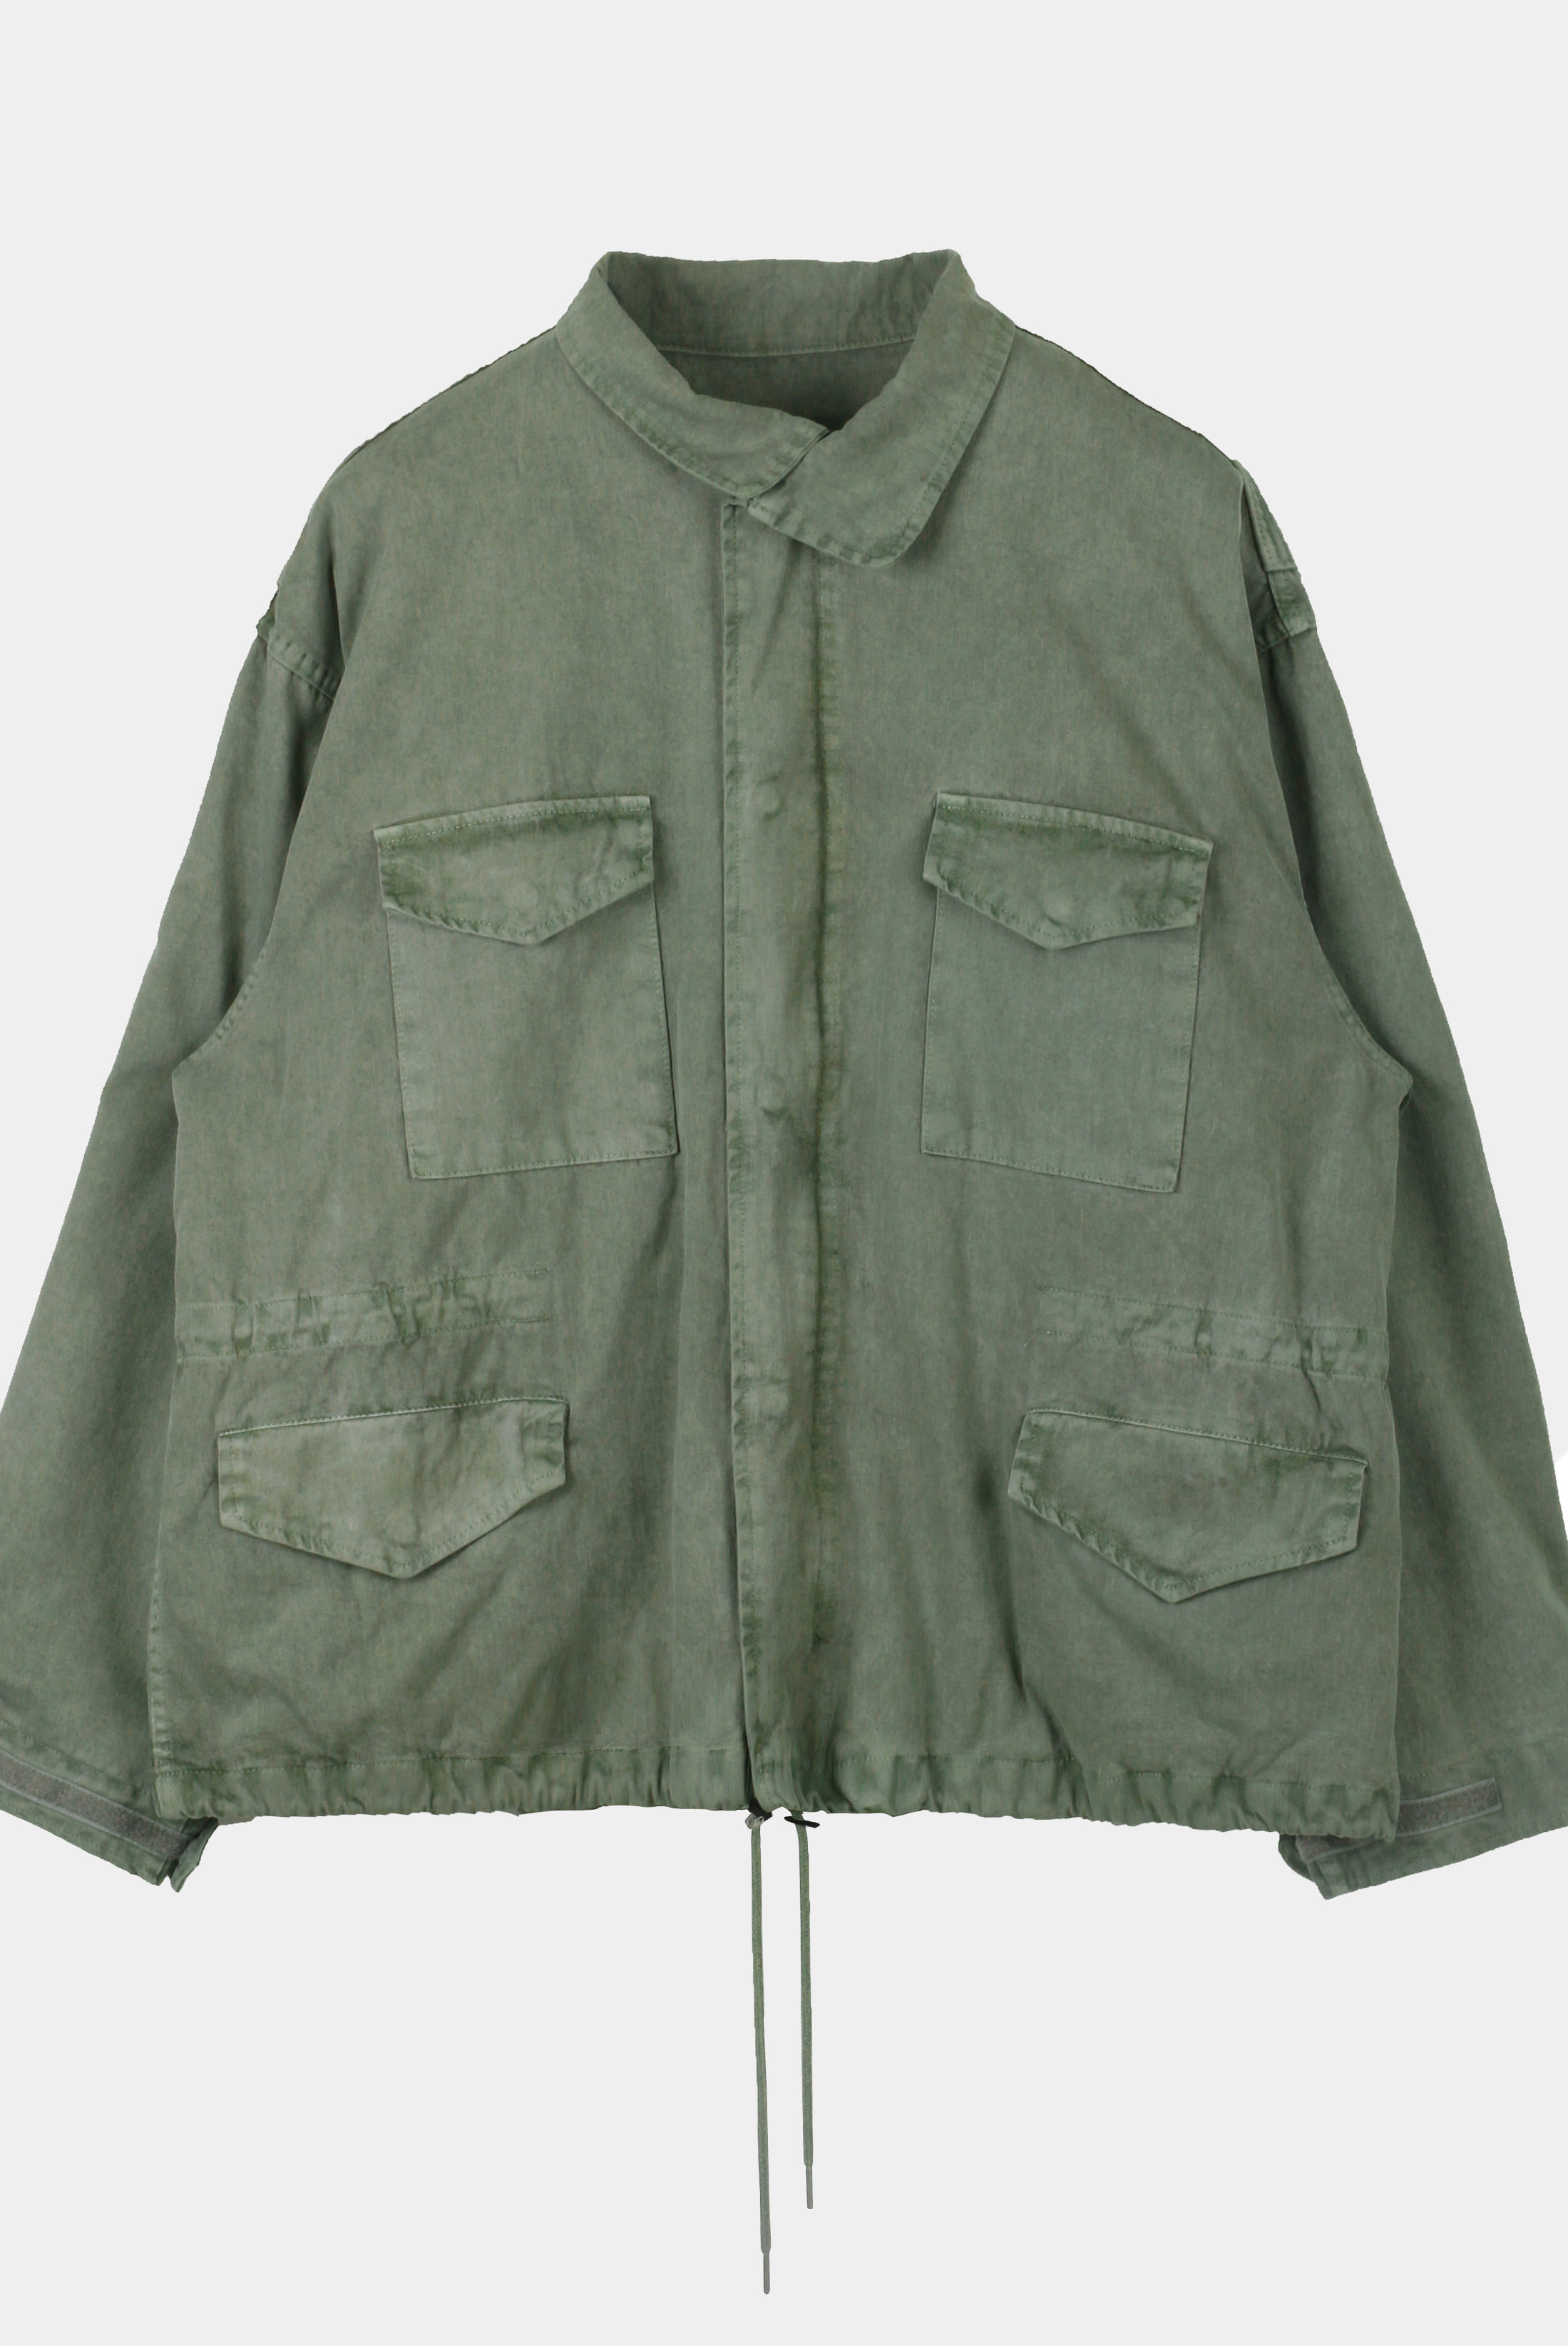 Pigment_Washing Over Field_Jacket